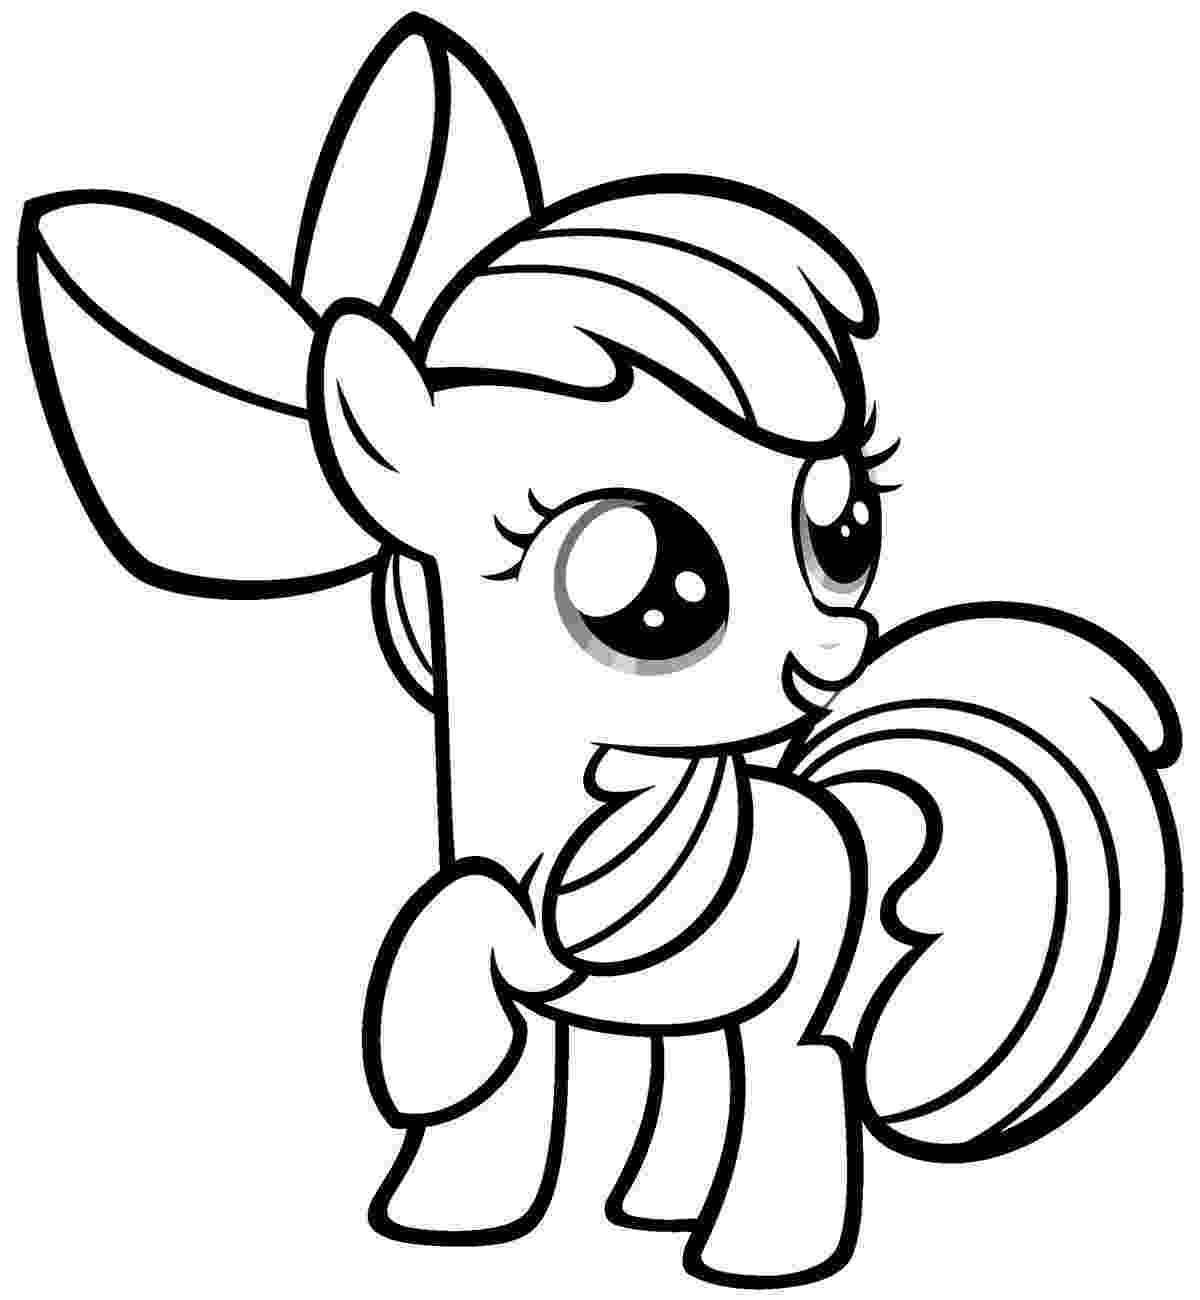 printable my little pony coloring pages free printable my little pony coloring pages for kids my pony pages coloring little my printable